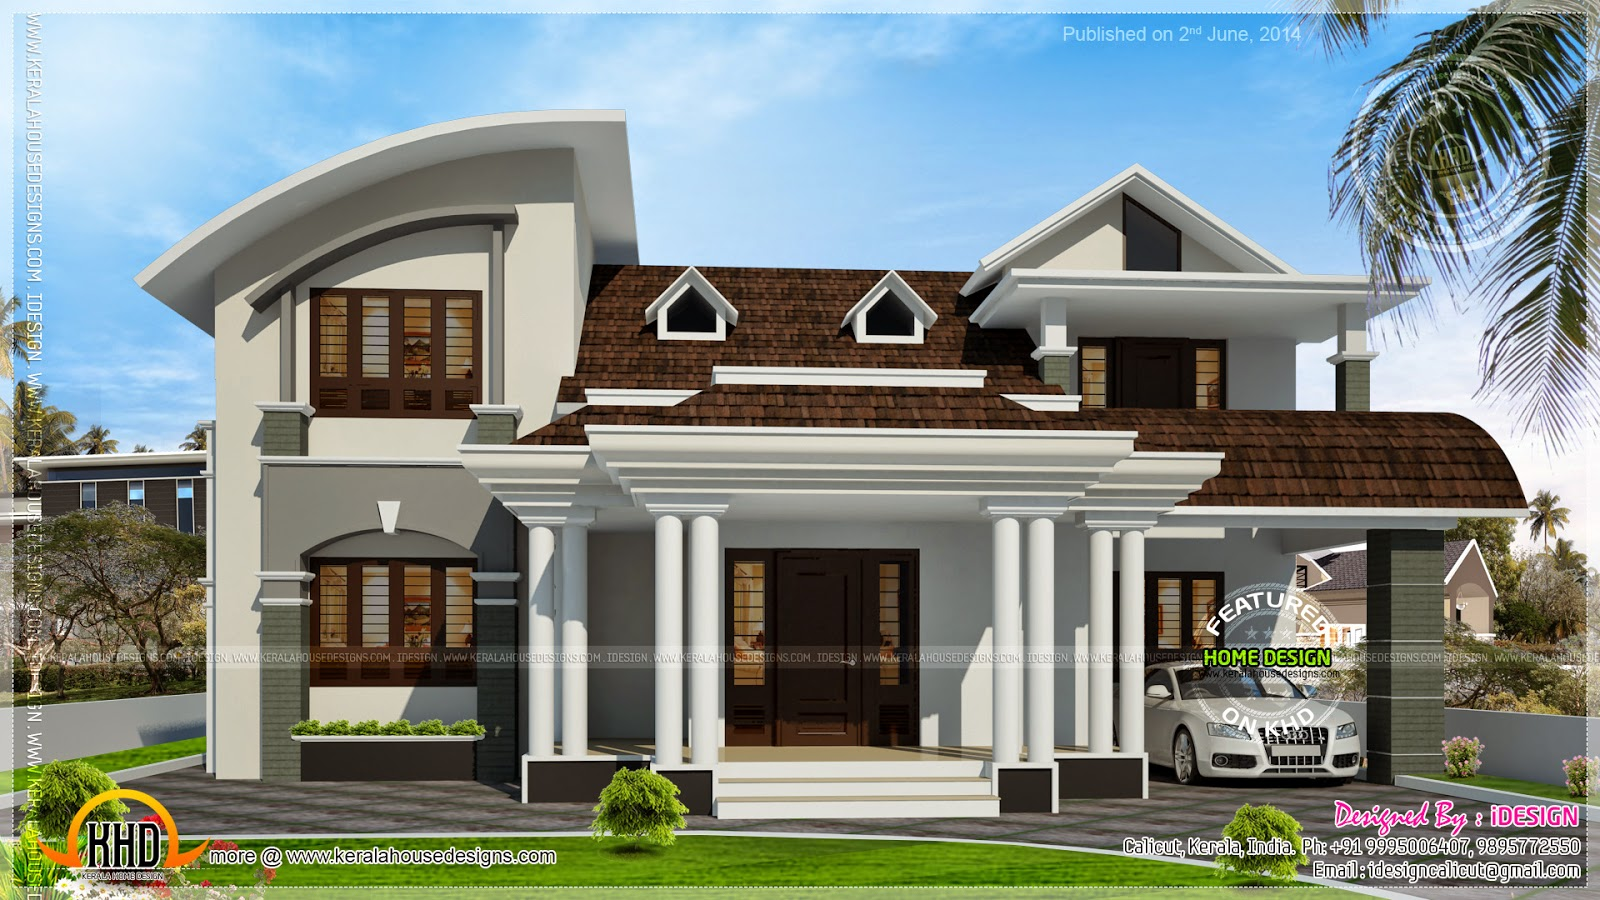 Siddu buzz online kerala home design for Window glass design in kerala